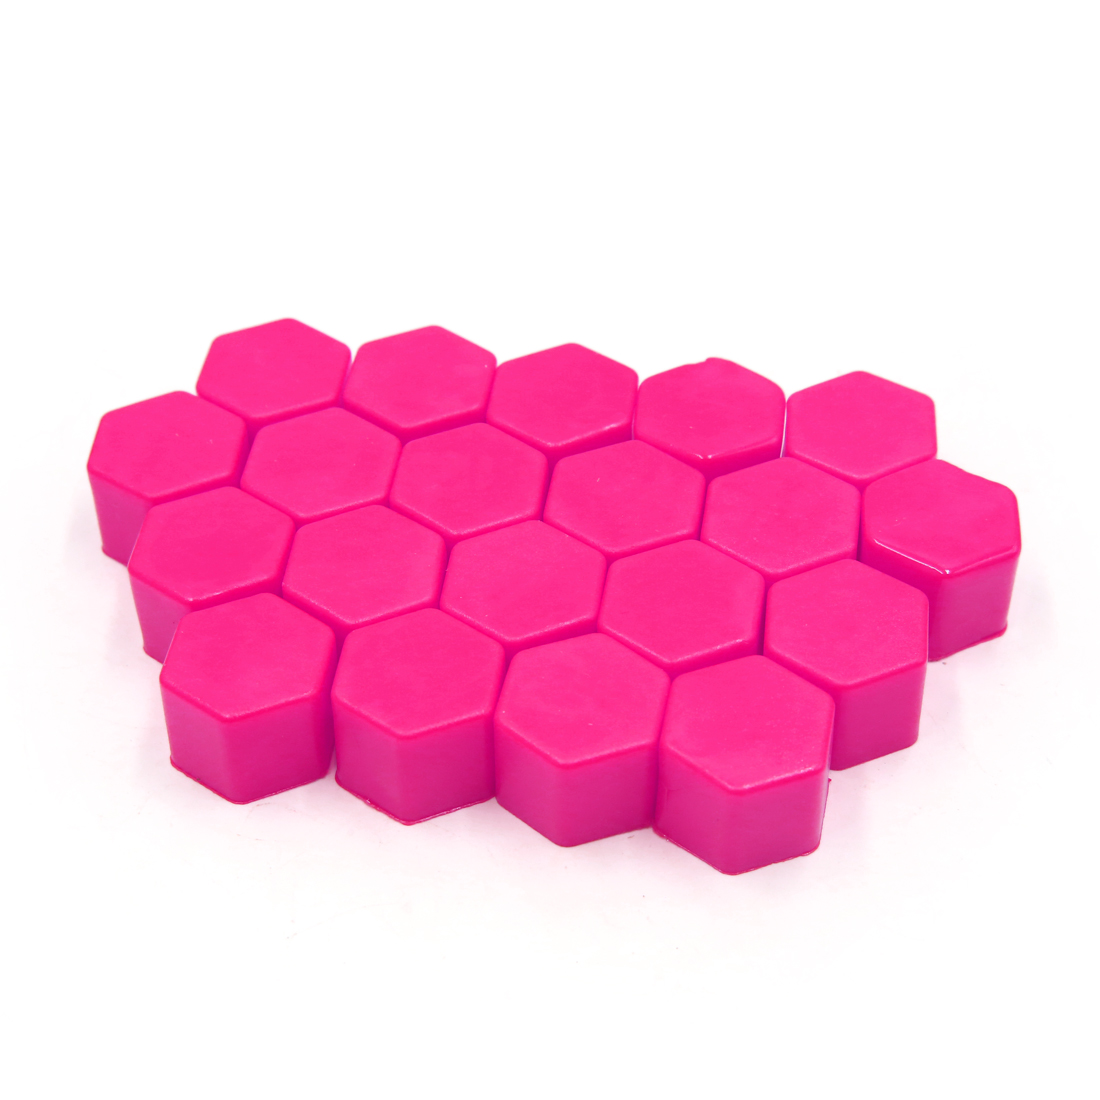 20 Pcs 17 x 19mm Pink Luminous Car Wheel Tyre Hub Screw Bolt Nut Cap Covers